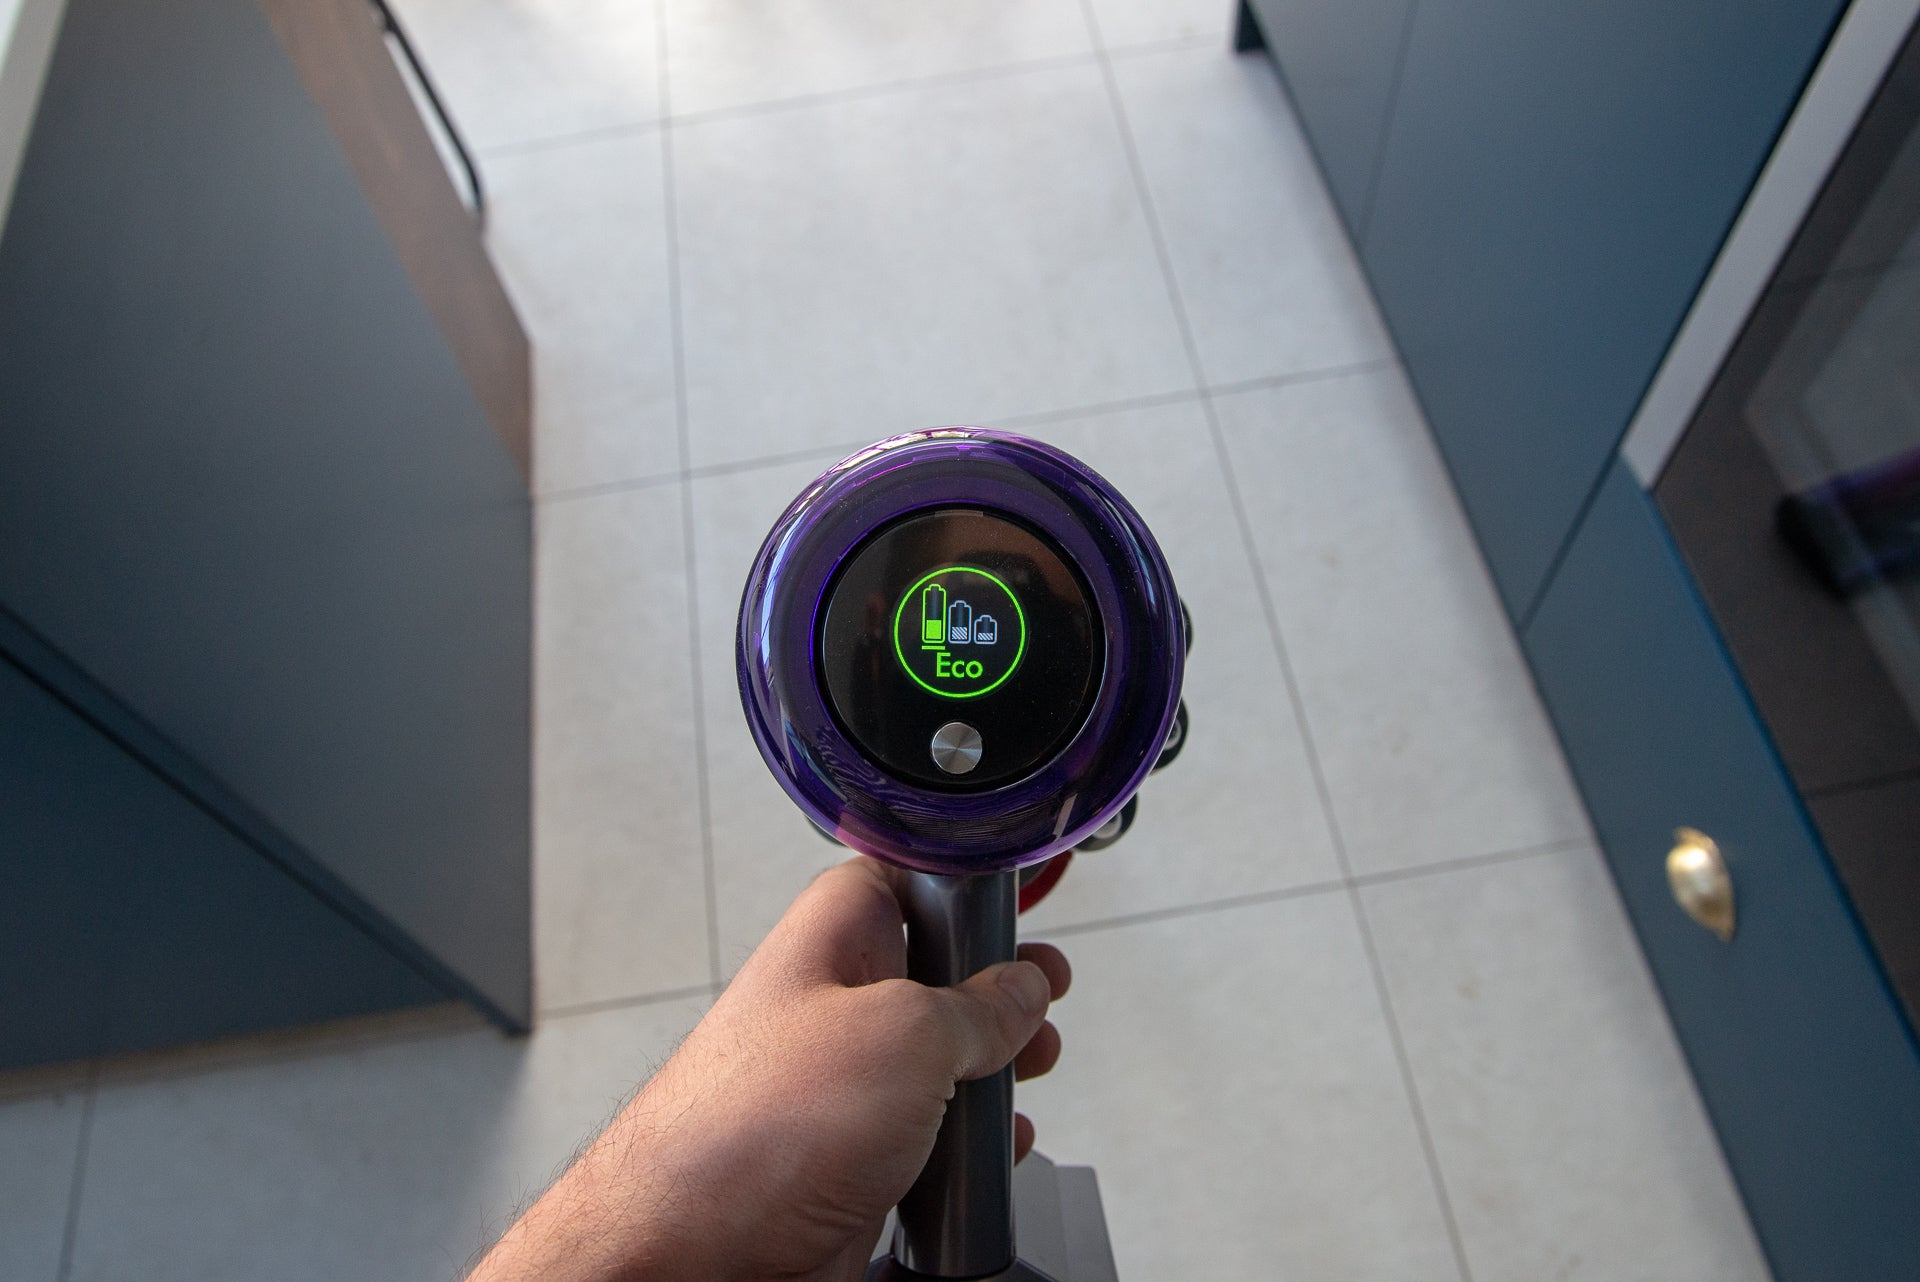 Dyson V11 Absolute Eco mode on screen